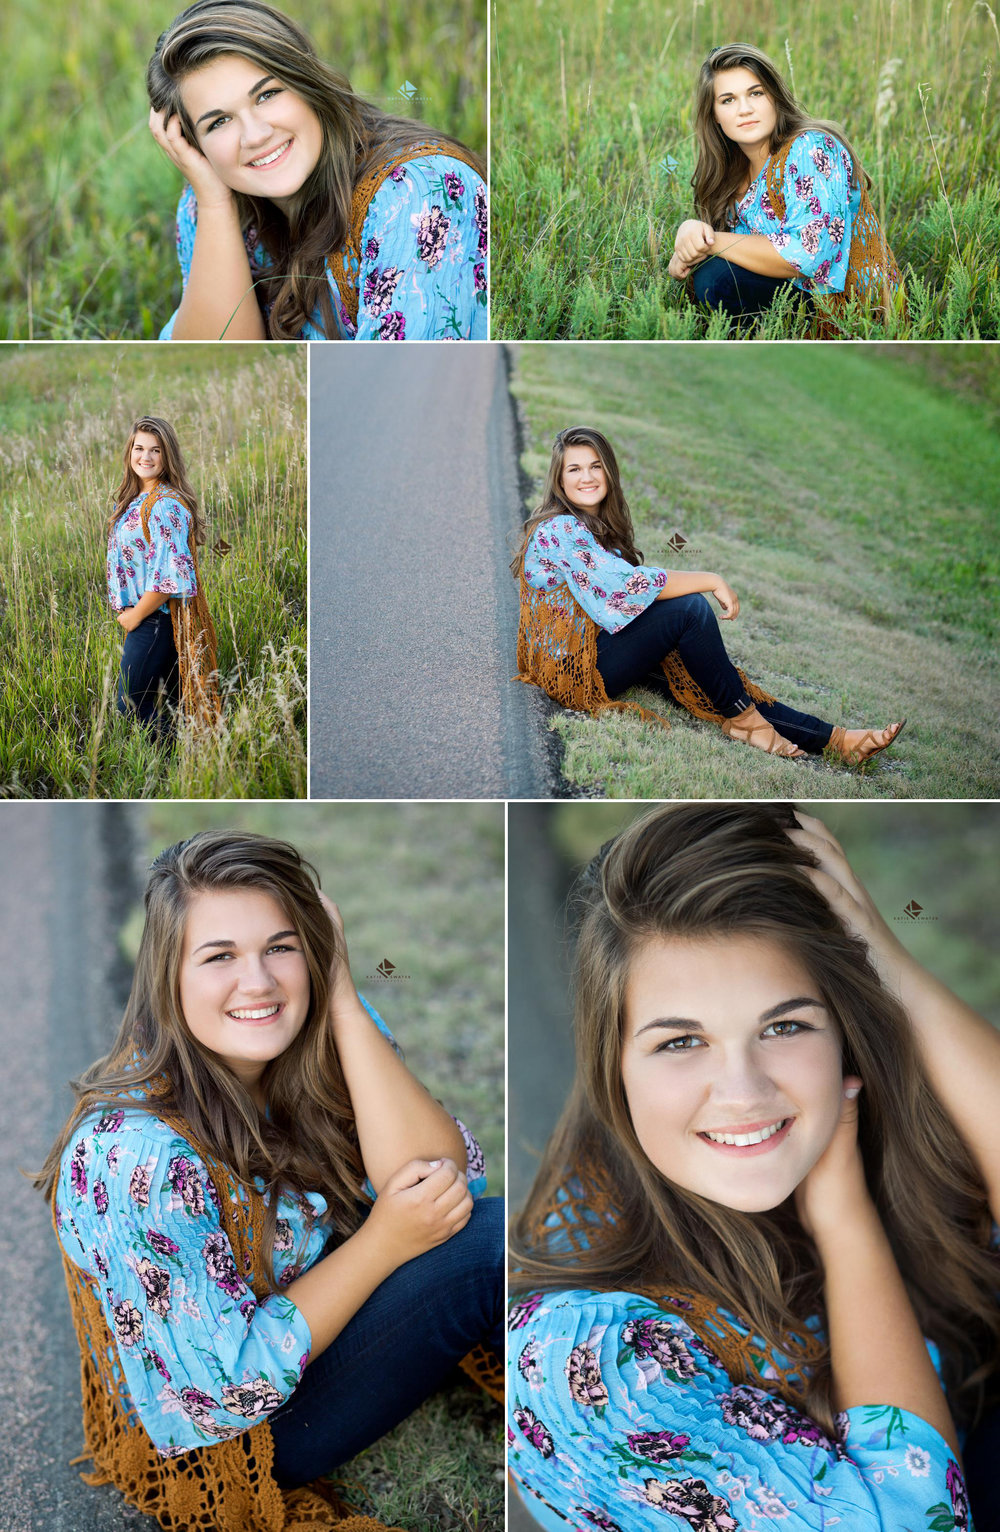 brunette senior girl in a blue floral top and jeans sitting on the side of the road and in a field for senior pictures